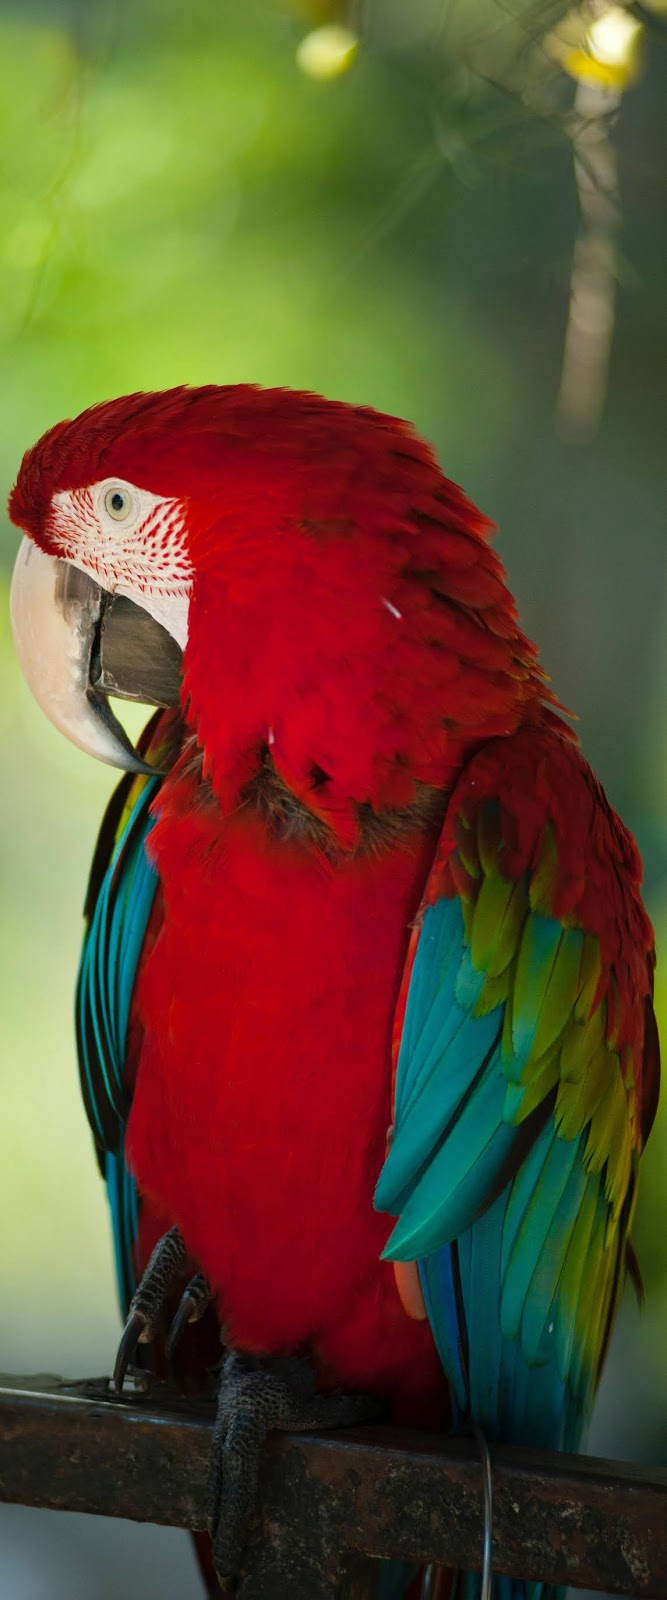 A beautiful colorful macaw photo.